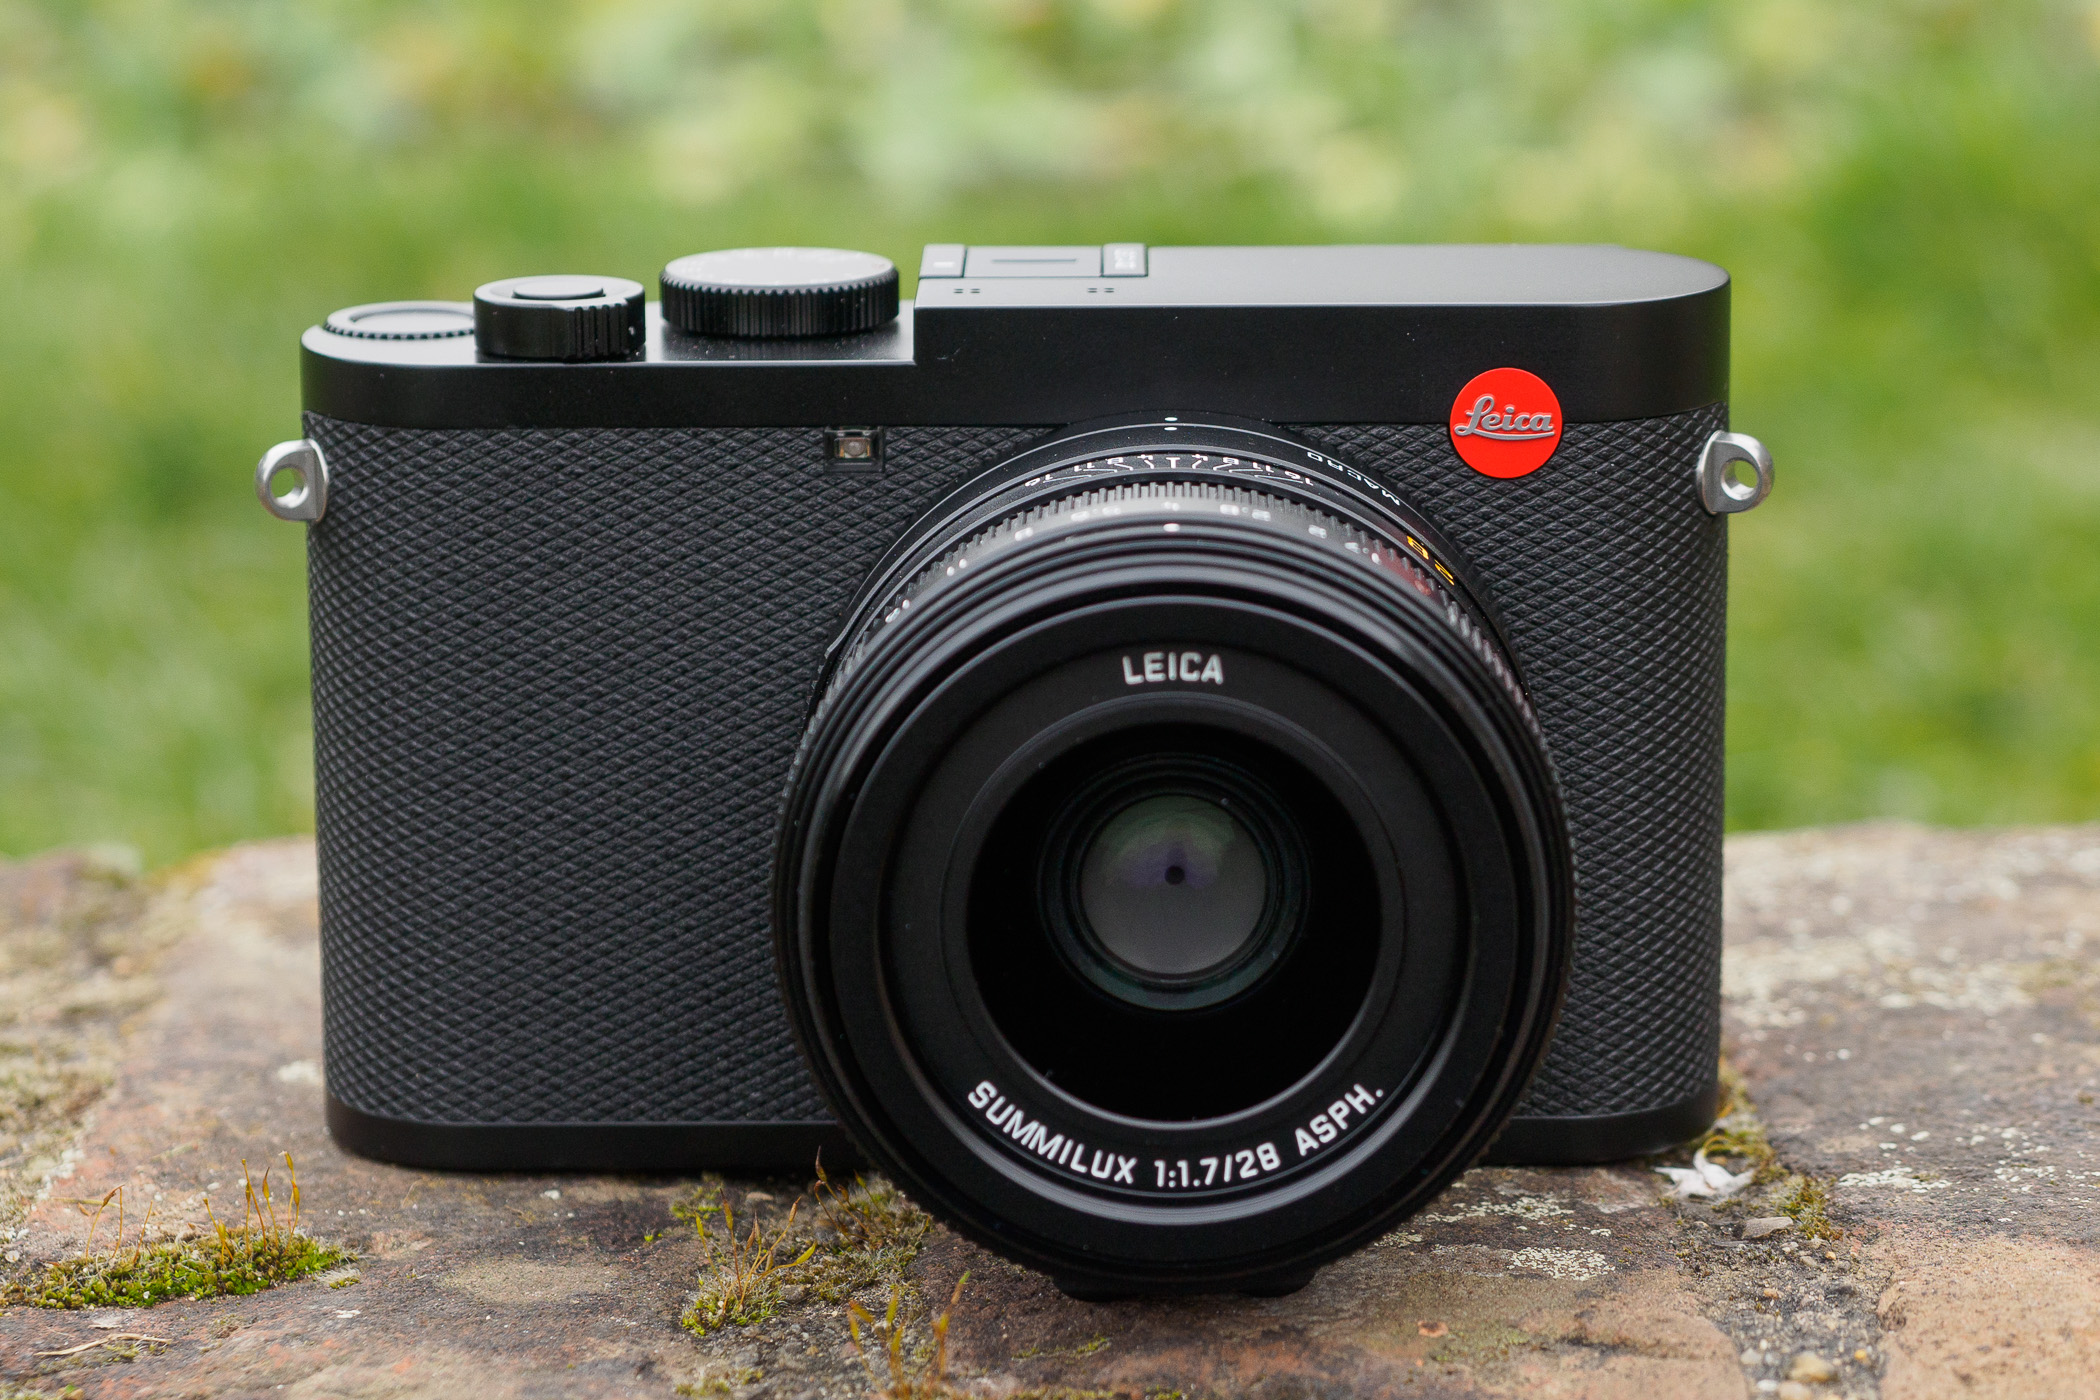 Leica Q2 review: hands-on first look